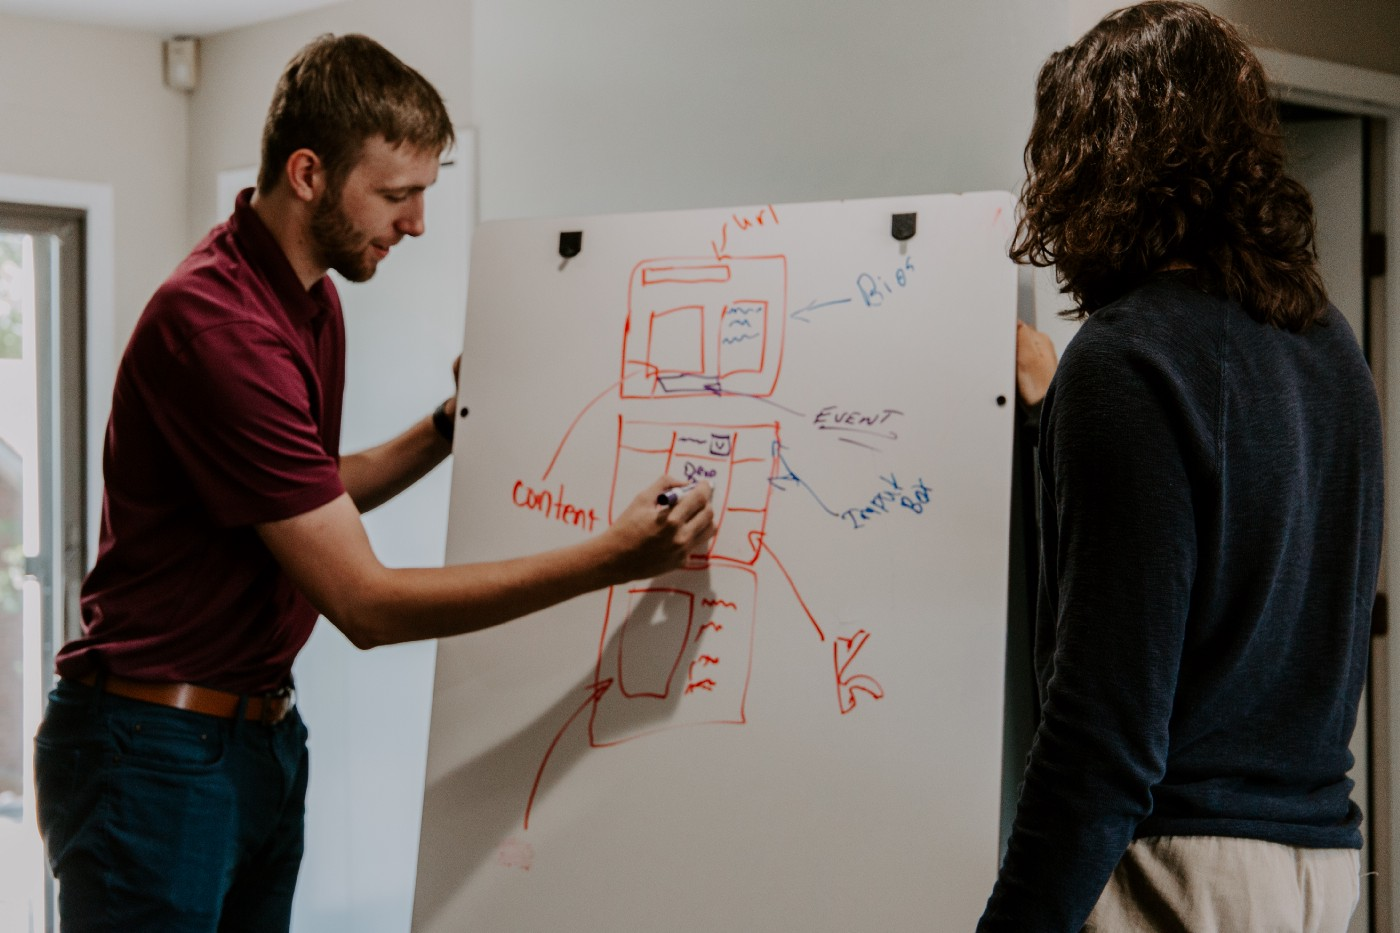 Two people working on a diagram